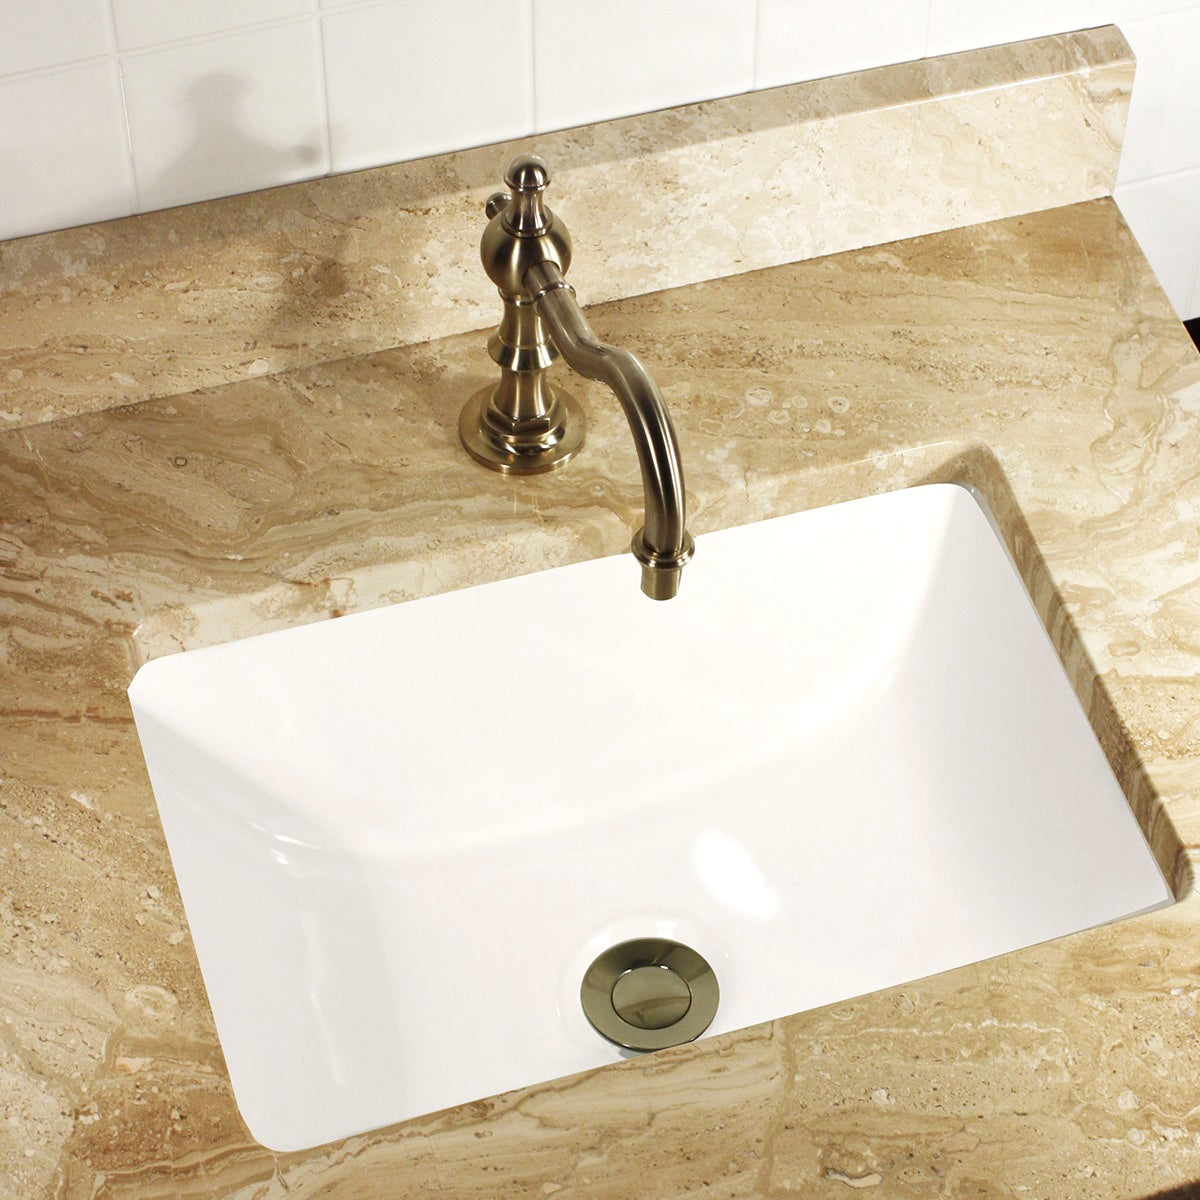 White Undermount Sink : ... Rectangle Ceramic Undermount WHITE Vanity Sink Bathroom SINKS eBay